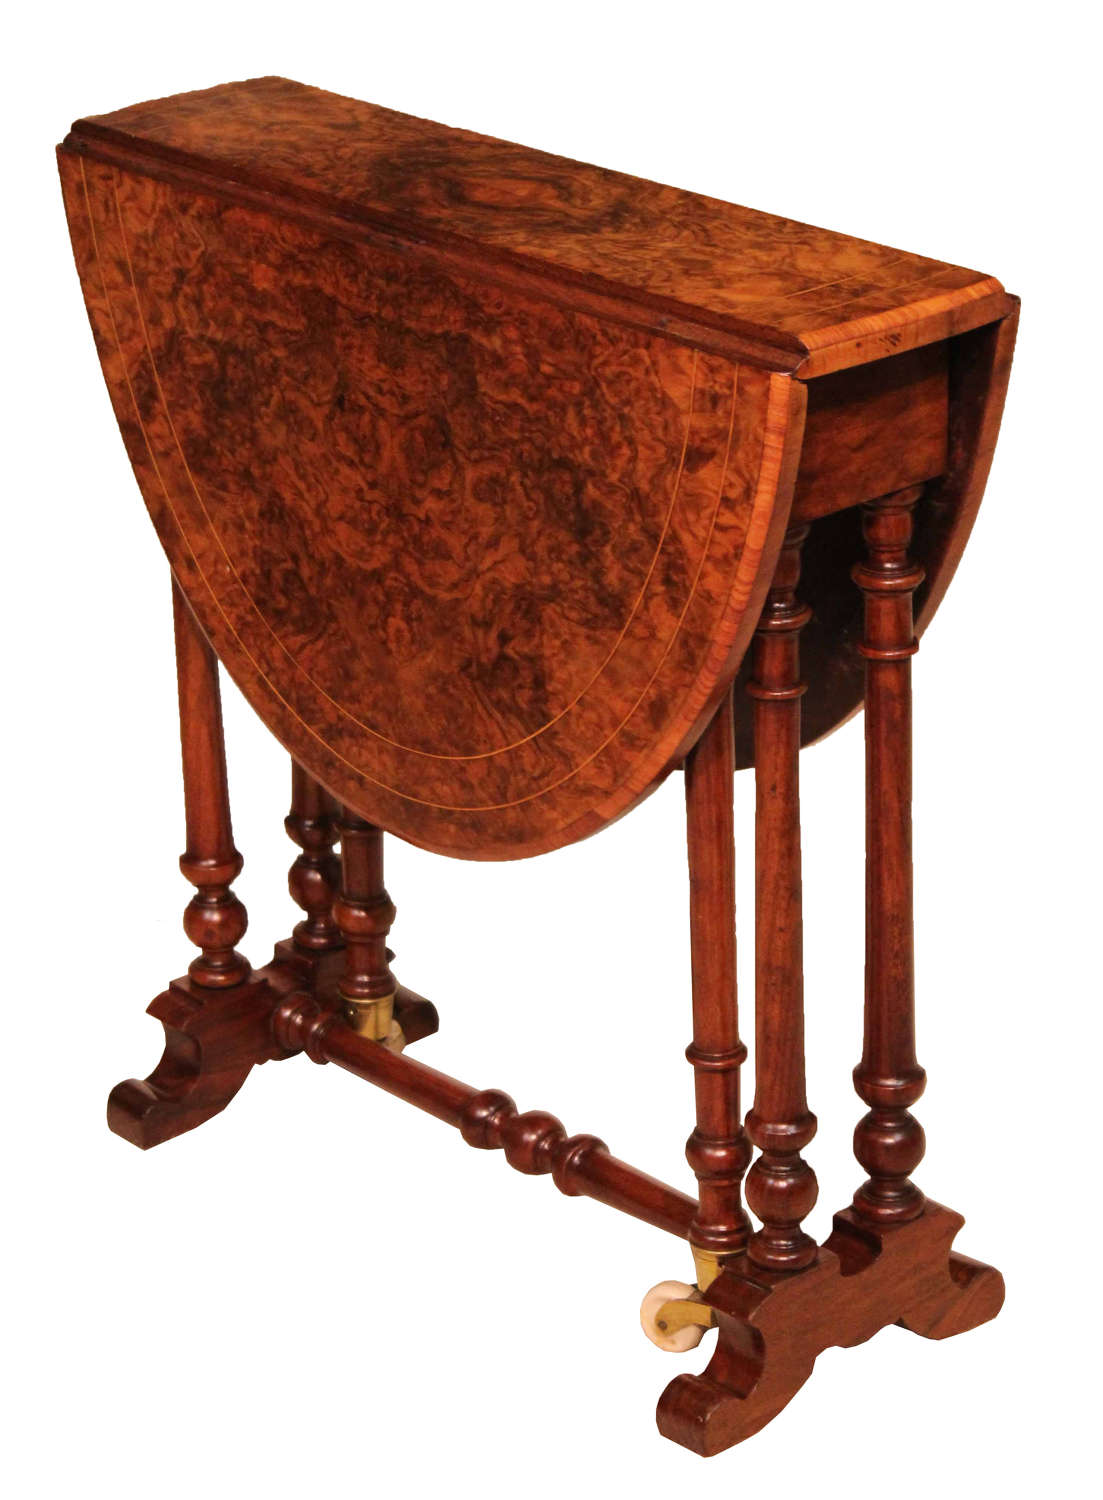 A Victorian Burr Walnut Baby Sutherland Table